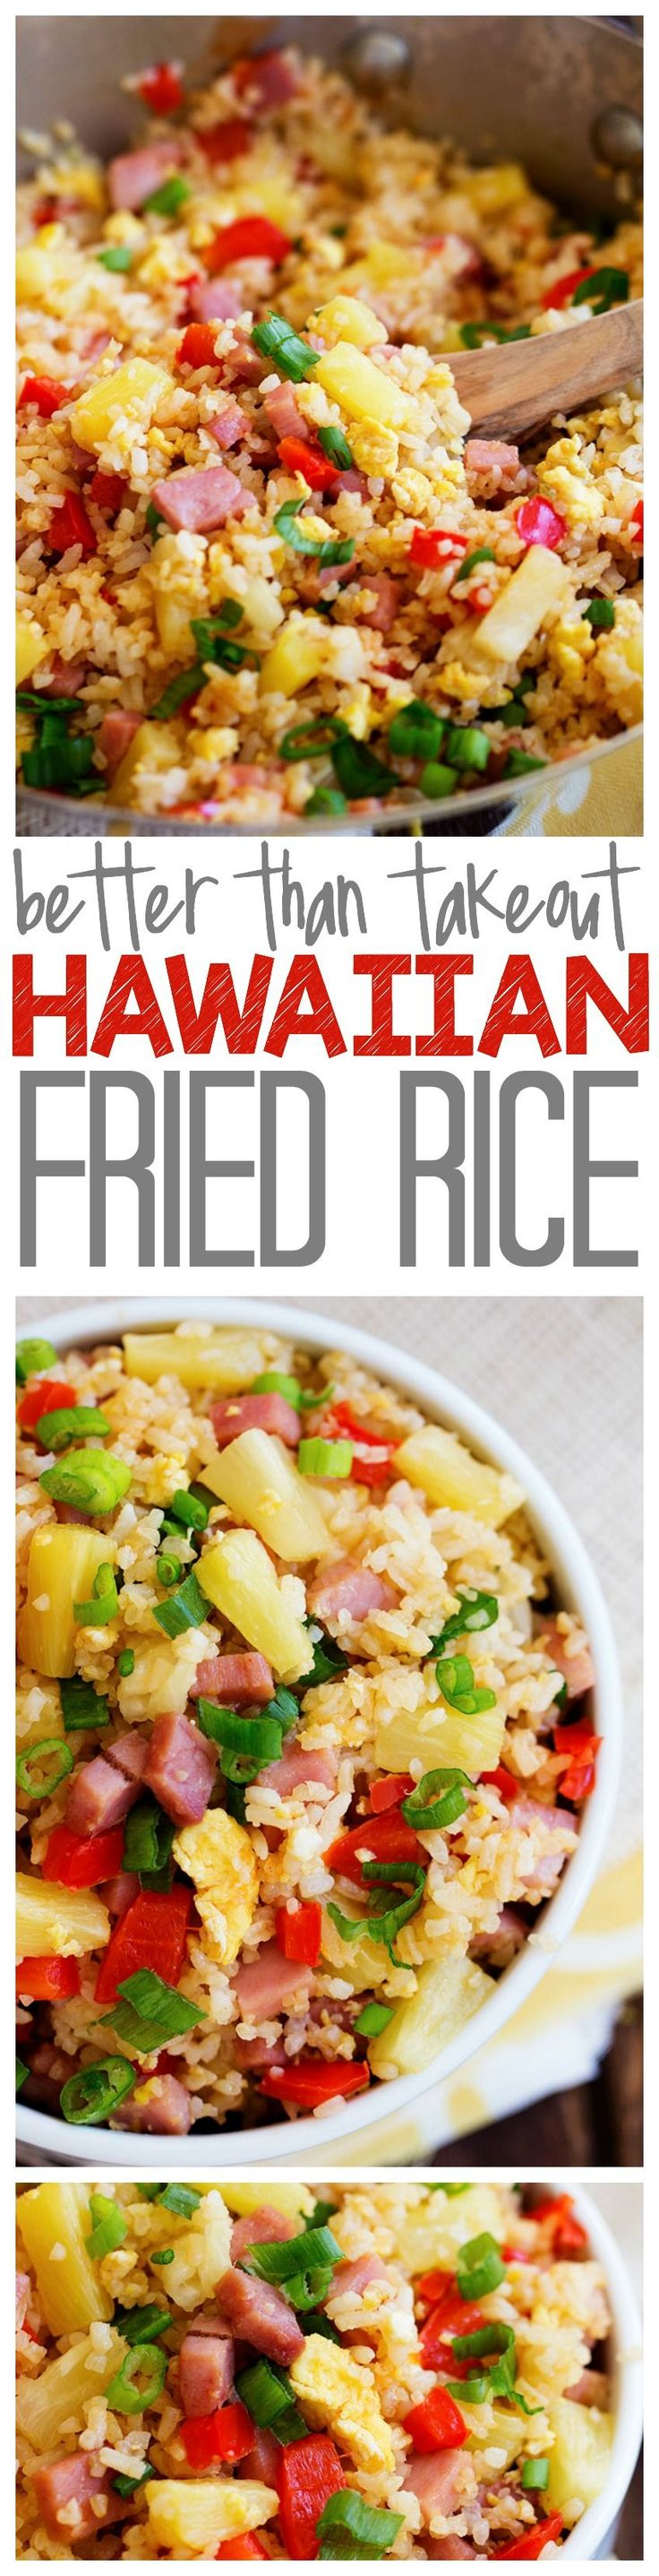 22 best recipes images on pinterest snacks cooking food and this hawaiian fried rice is so much better than takeout loaded with ham pineapple forumfinder Images